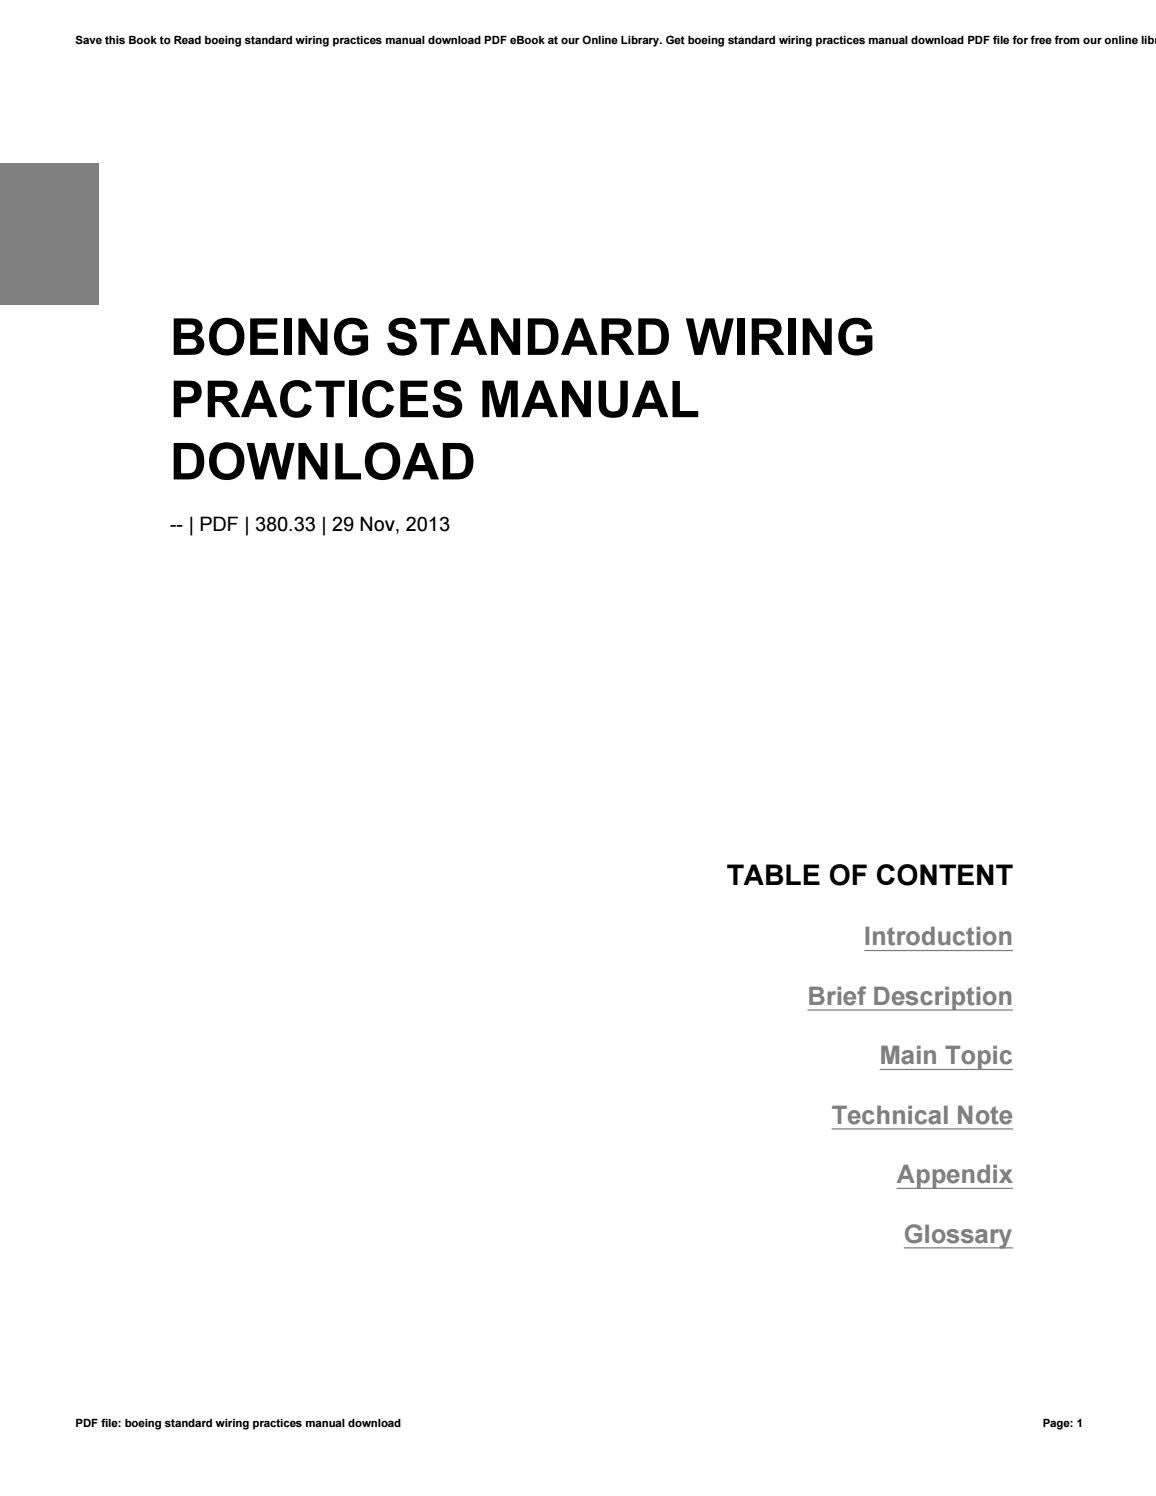 boeing standard wiring practices manual download by